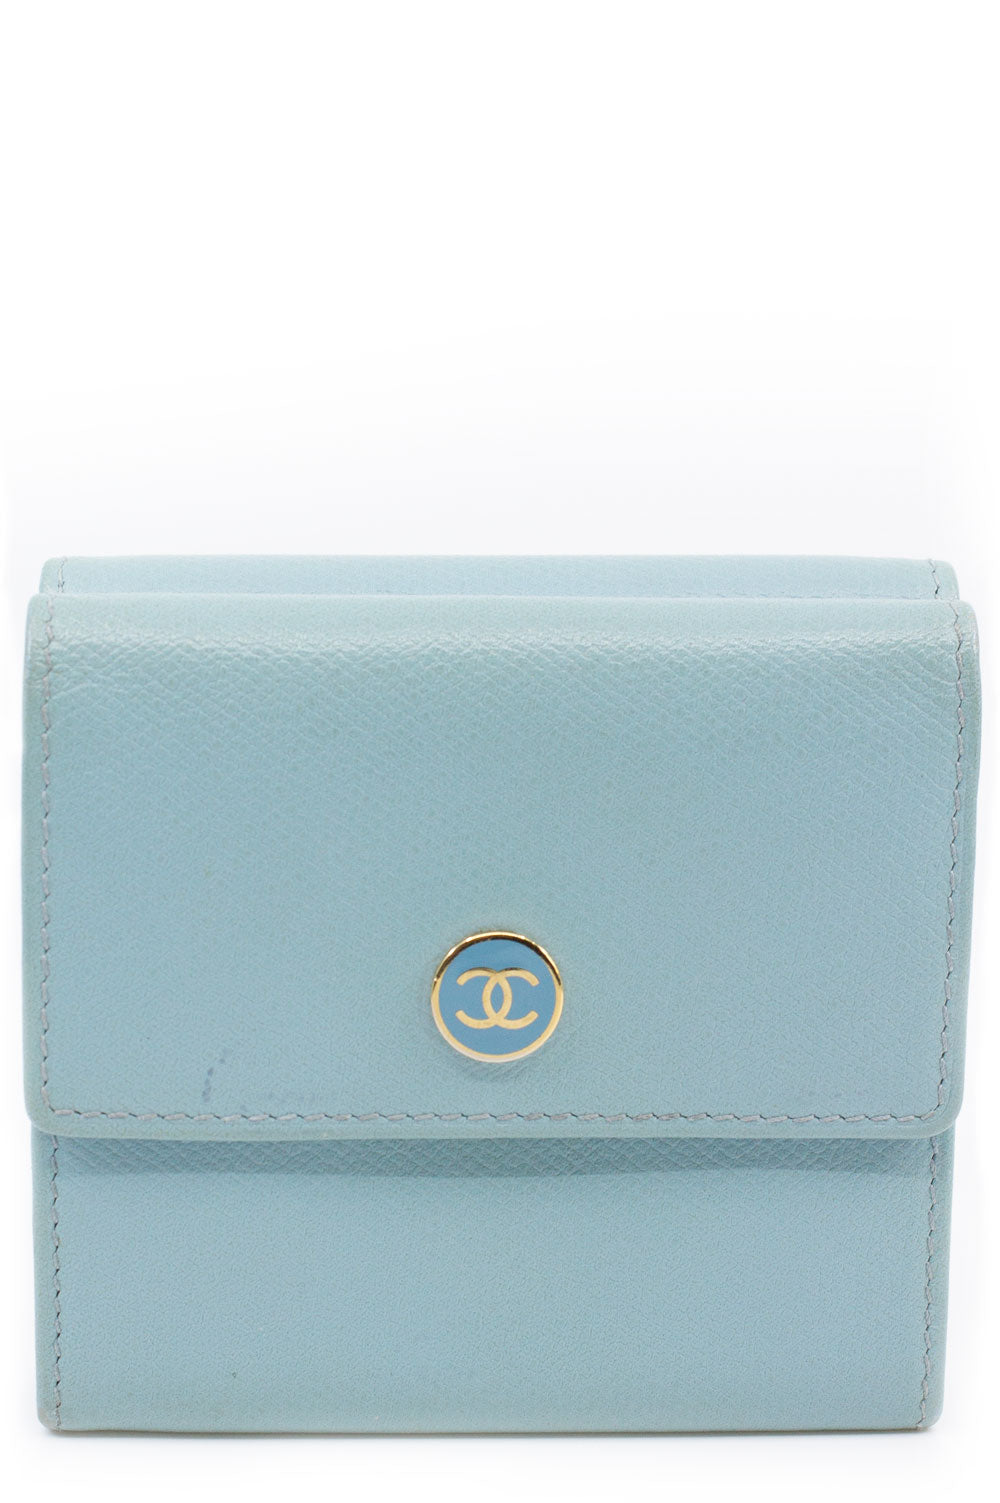 CHANEL Wallet Baby Blue Frontalansicht